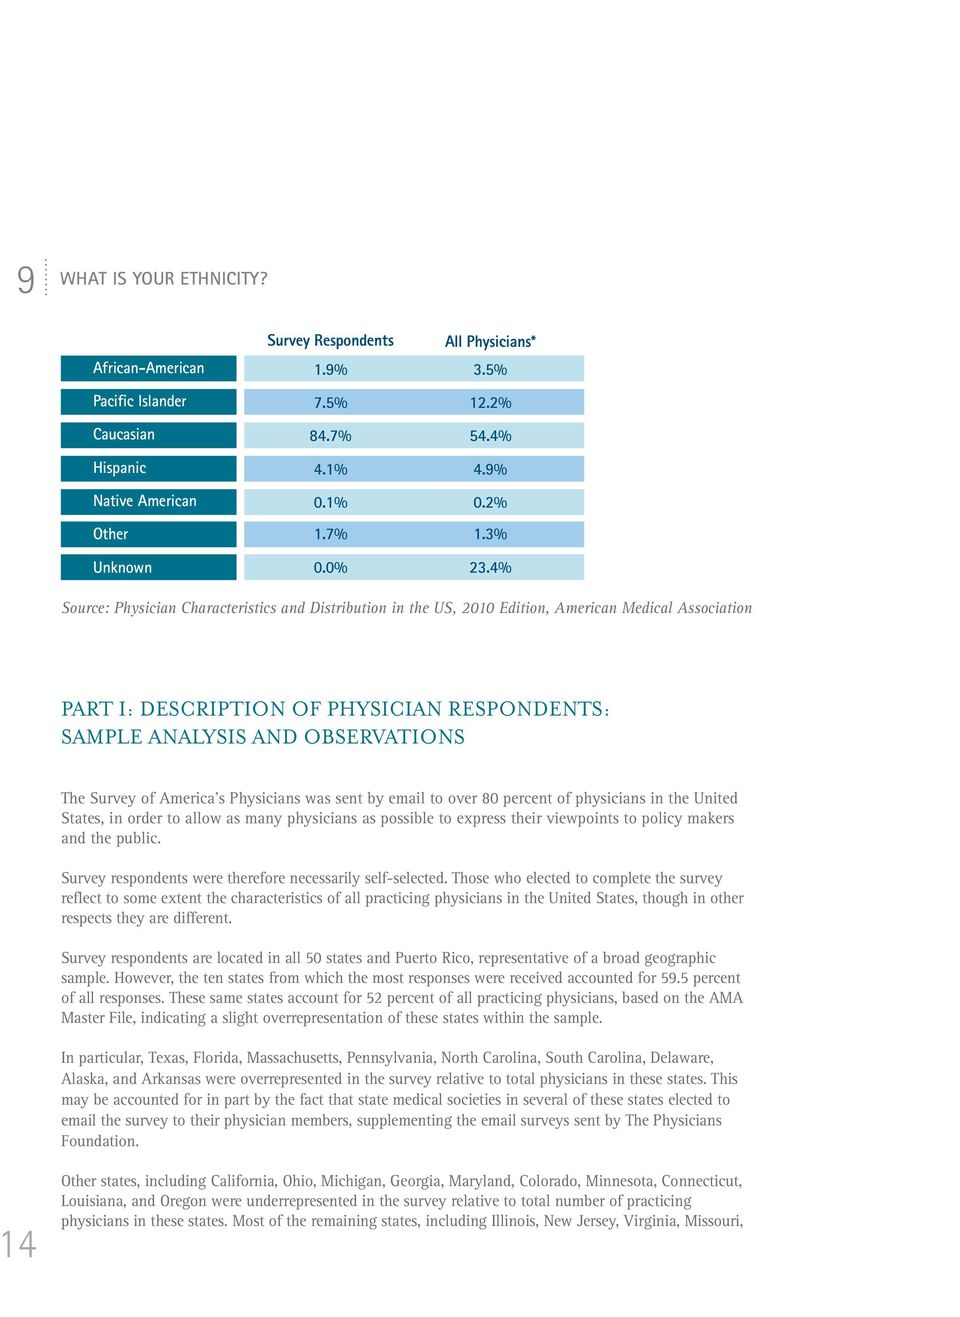 4% Source: Physician Characteristics and Distribution in the US, 2010 Edition, American Medical Association PART I: DESCRIPTION OF PHYSICIAN RESPONDENTS: SAMPLE ANALYSIS AND OBSERVATIONS The Survey